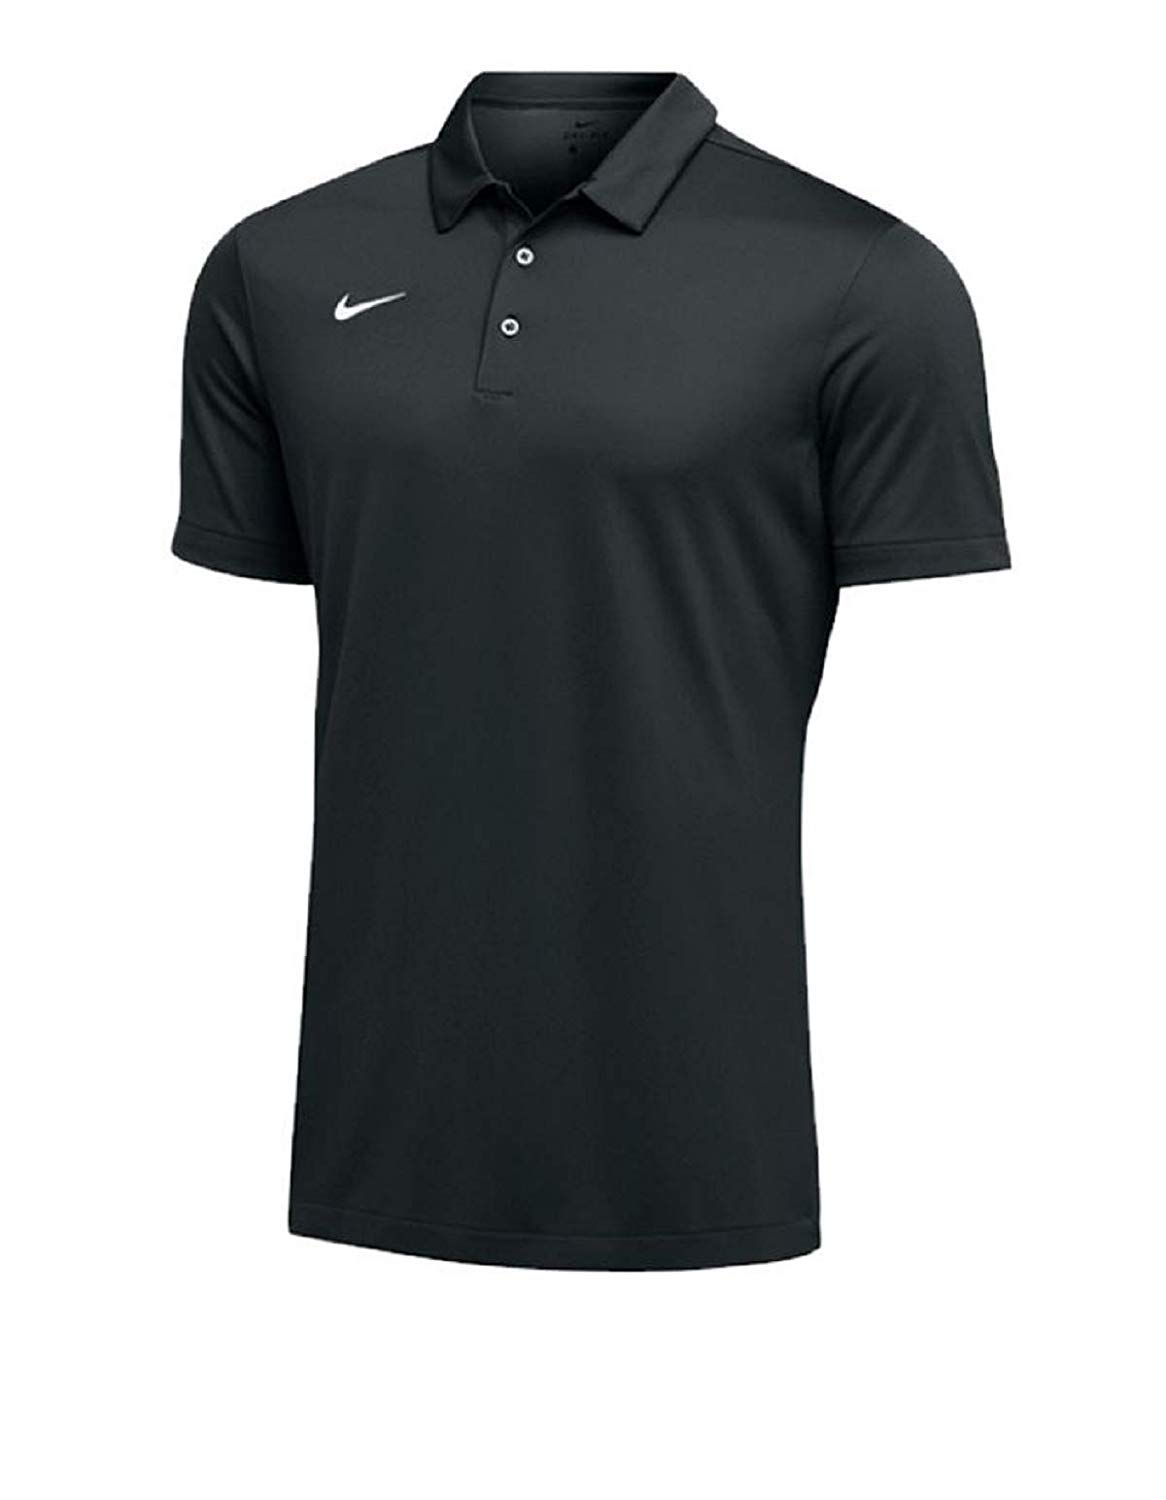 Nike Mens Dri-FIT Short Sleeve Polo Shirt (X-Large, Anthracite) by Nike